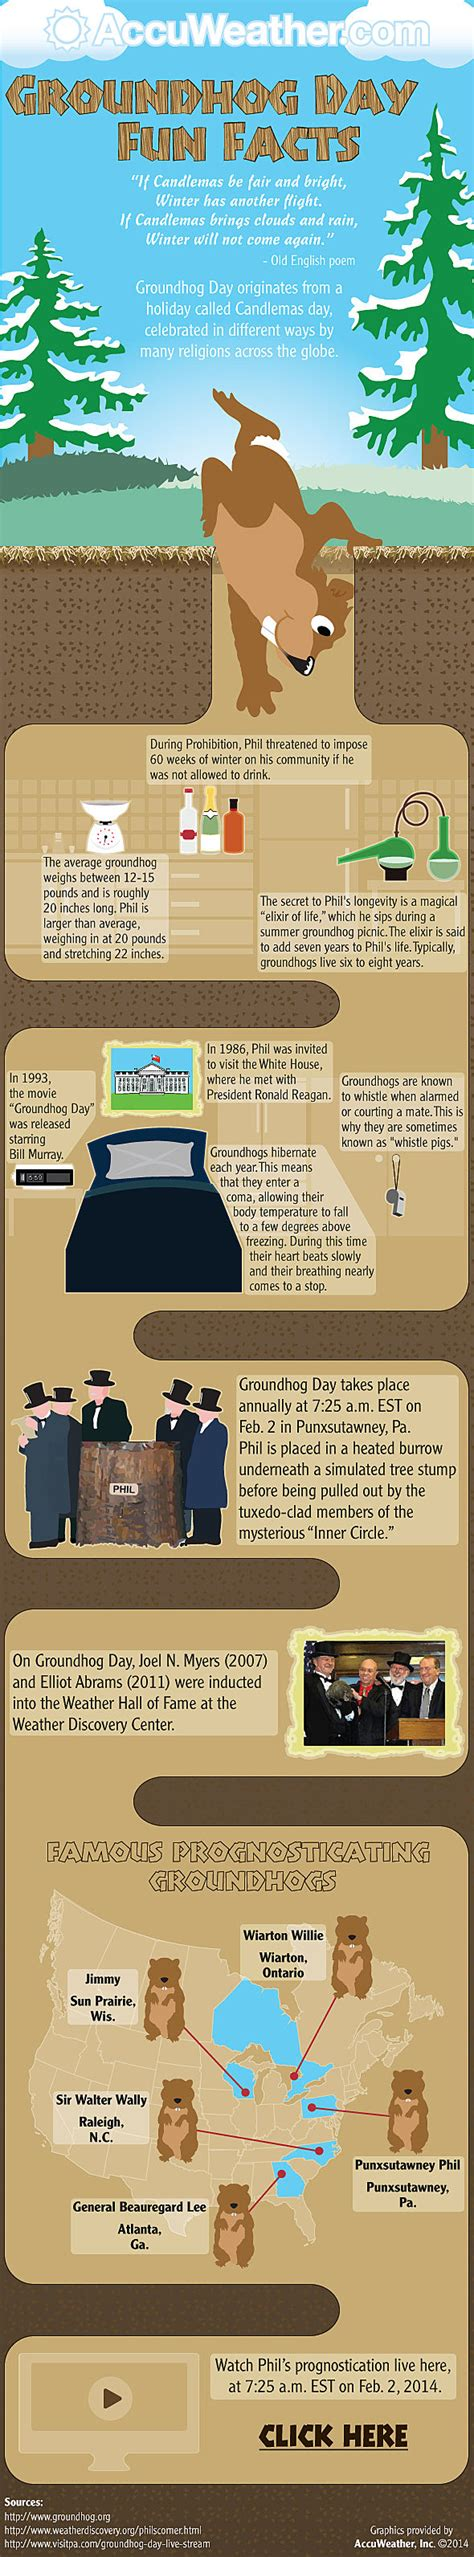 groundhog day information infographic all there is to about phil